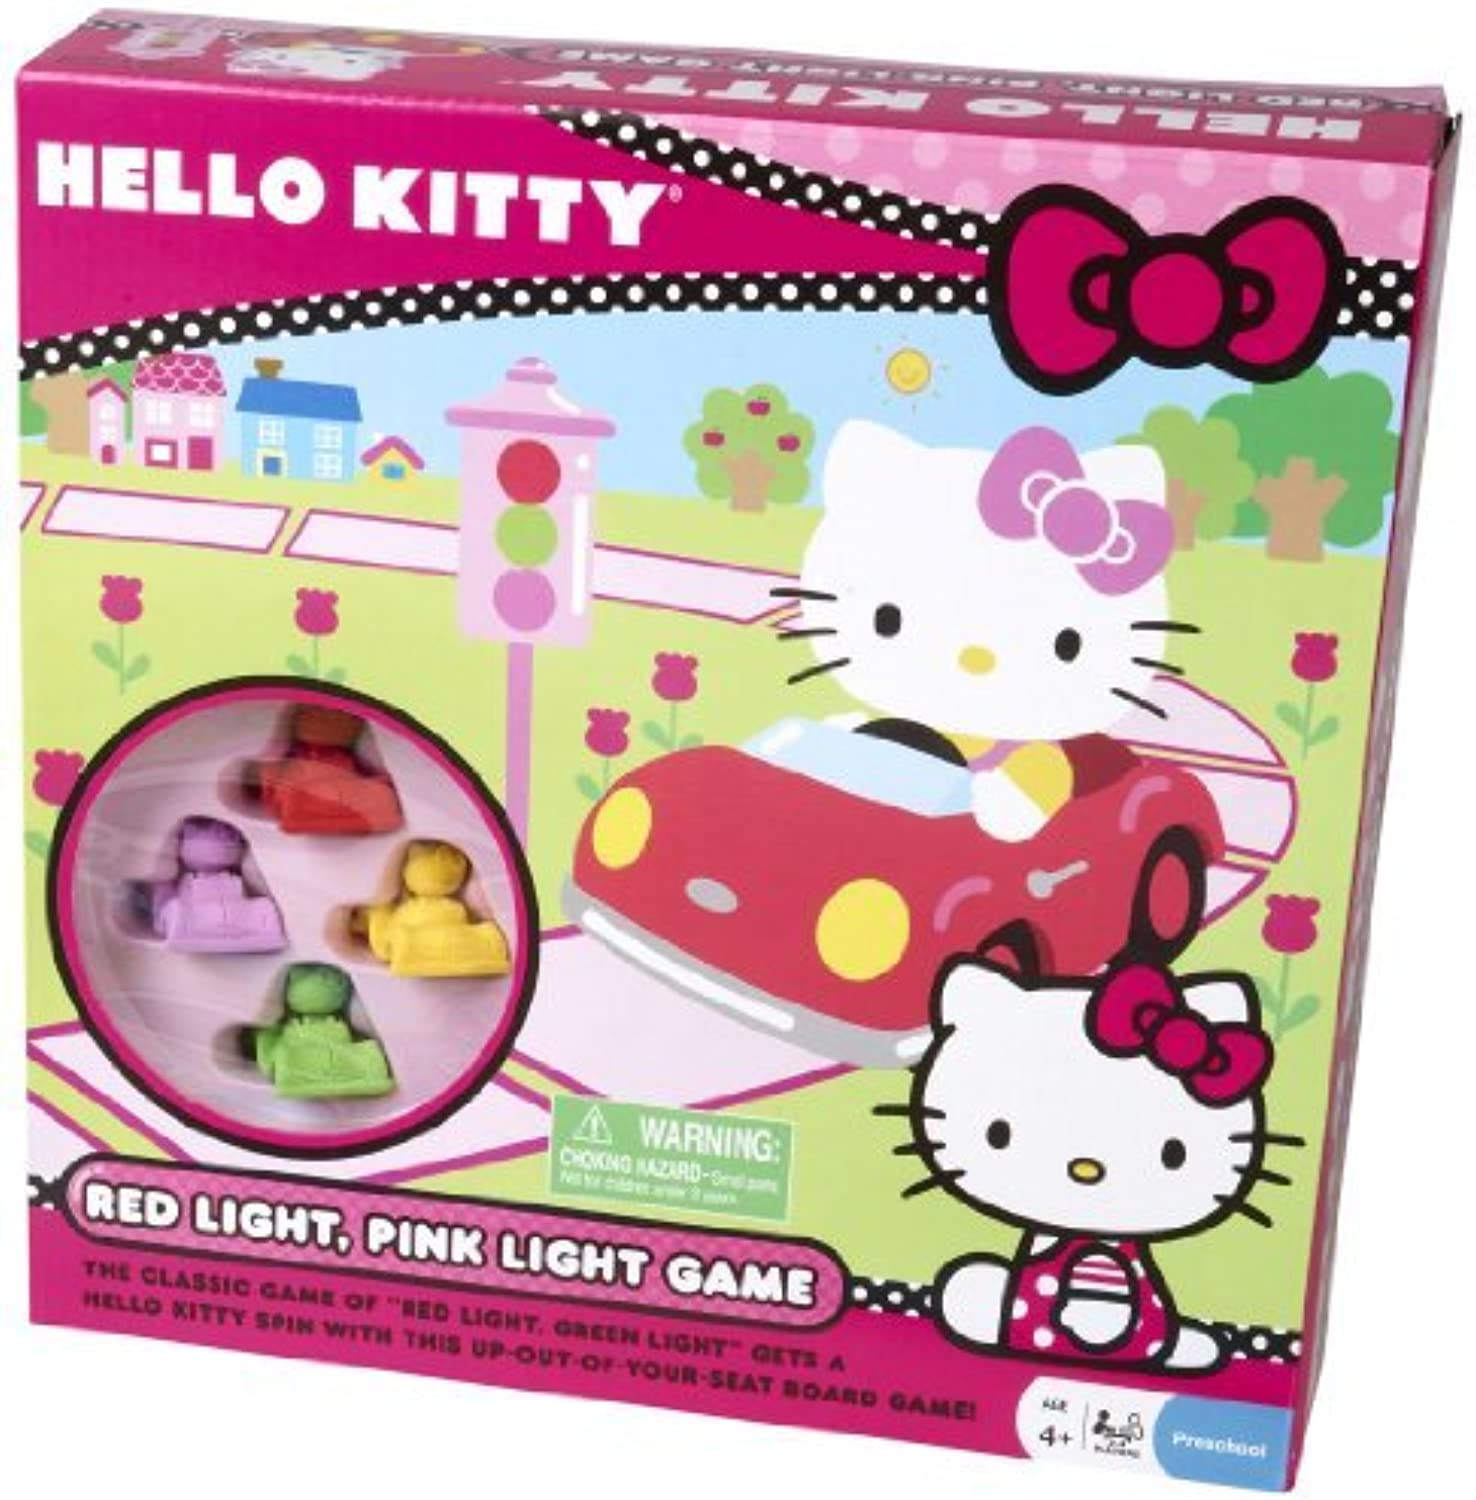 Hello Kitty Red and Pink Light Board Game by Pressman Toy